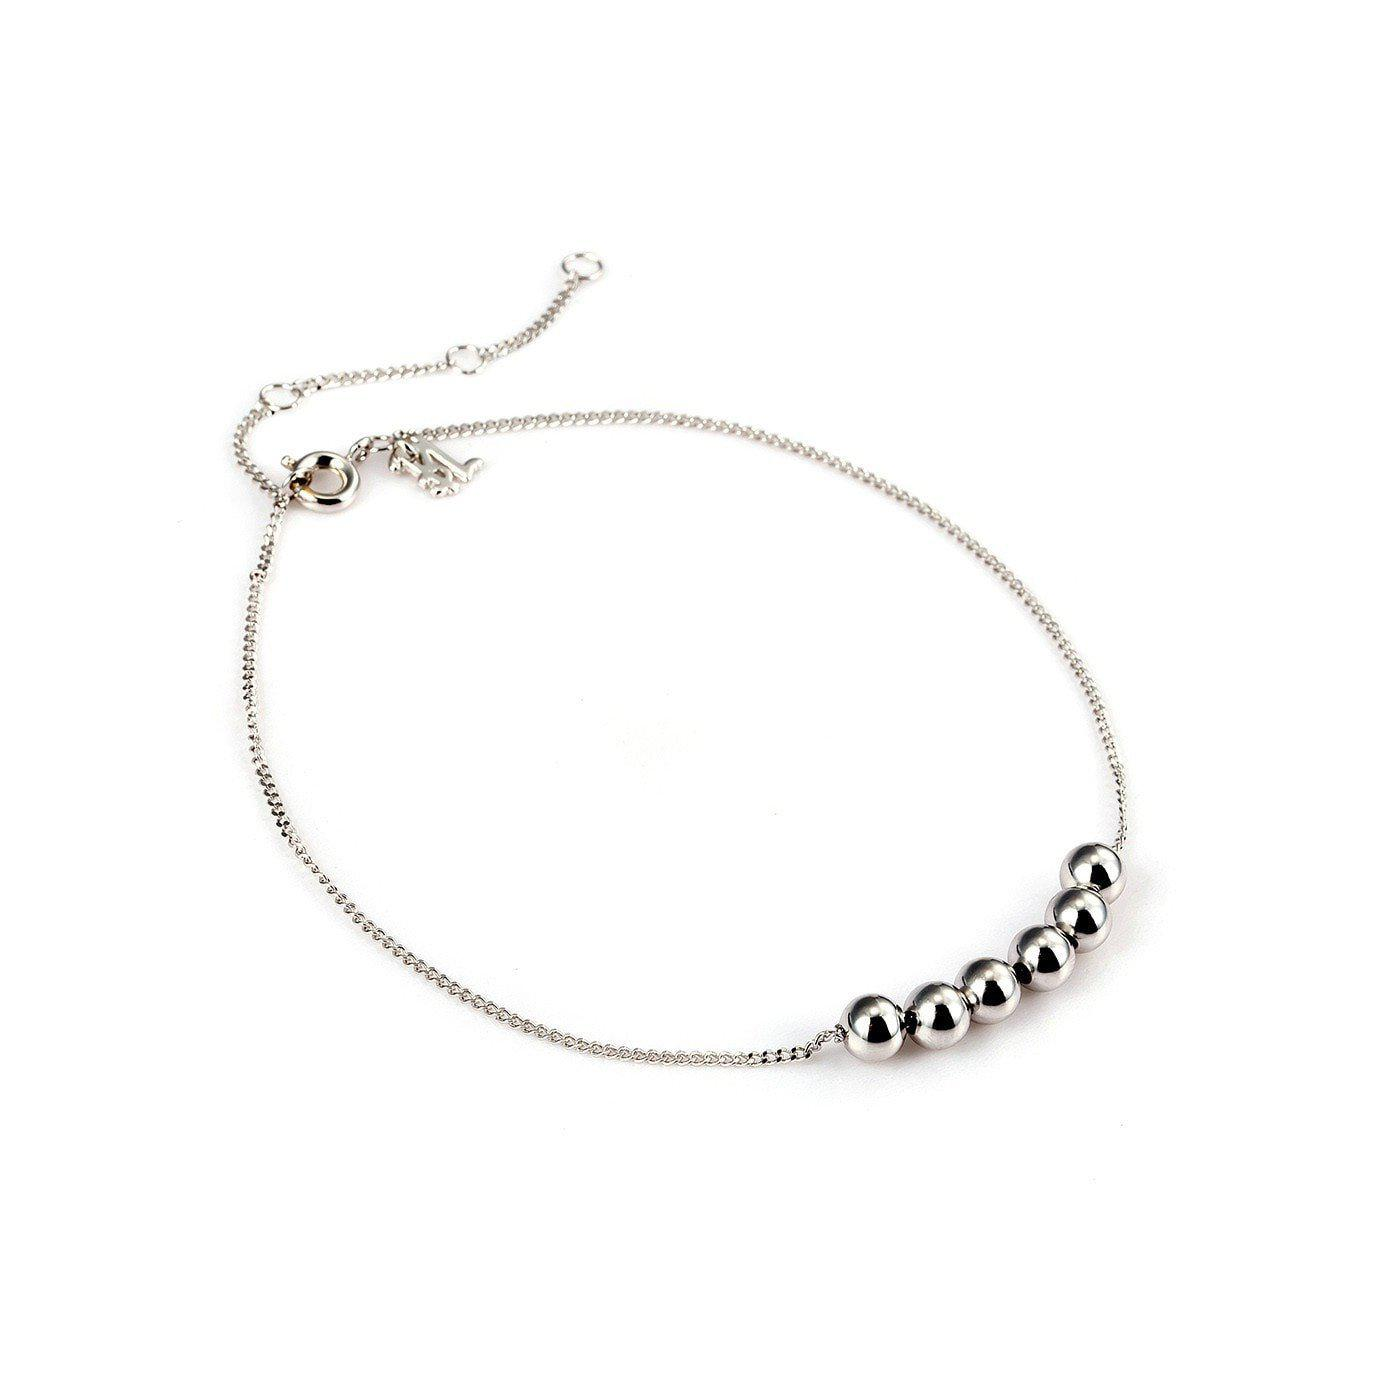 Exquisite Beads Anklet-Blinglane